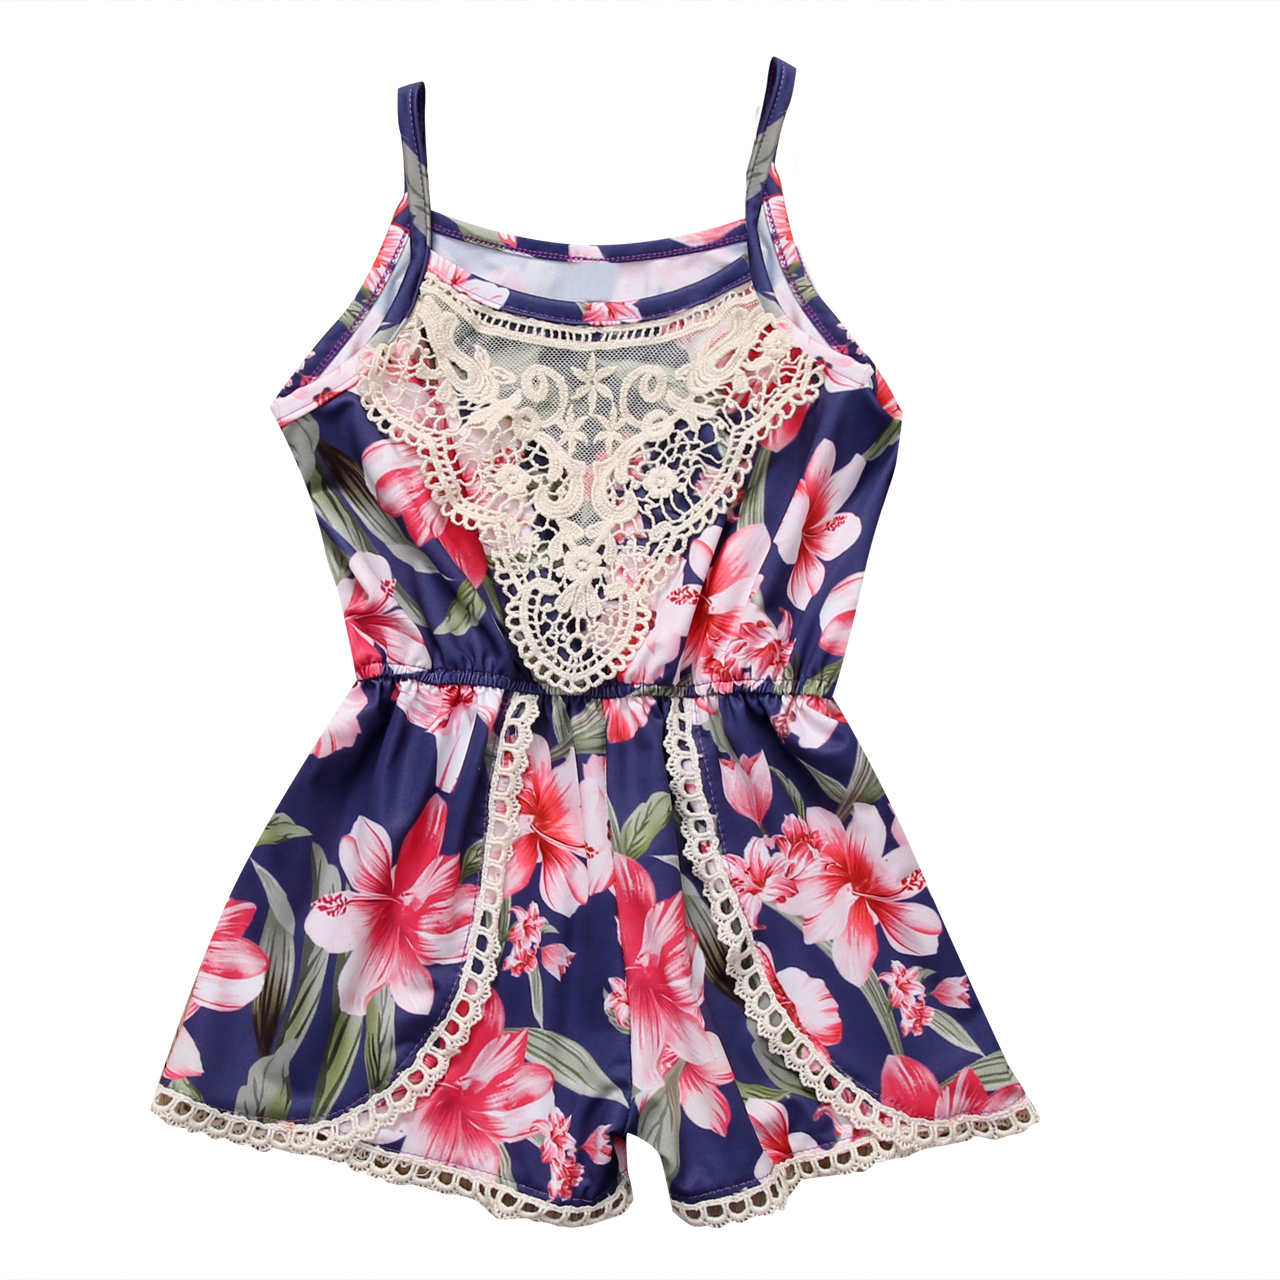 2017 Baby Girls Princess 0-24M Summer Sleeveless Lace Floral Sleeveless Backless Romper Jumpsuit Sunsuit